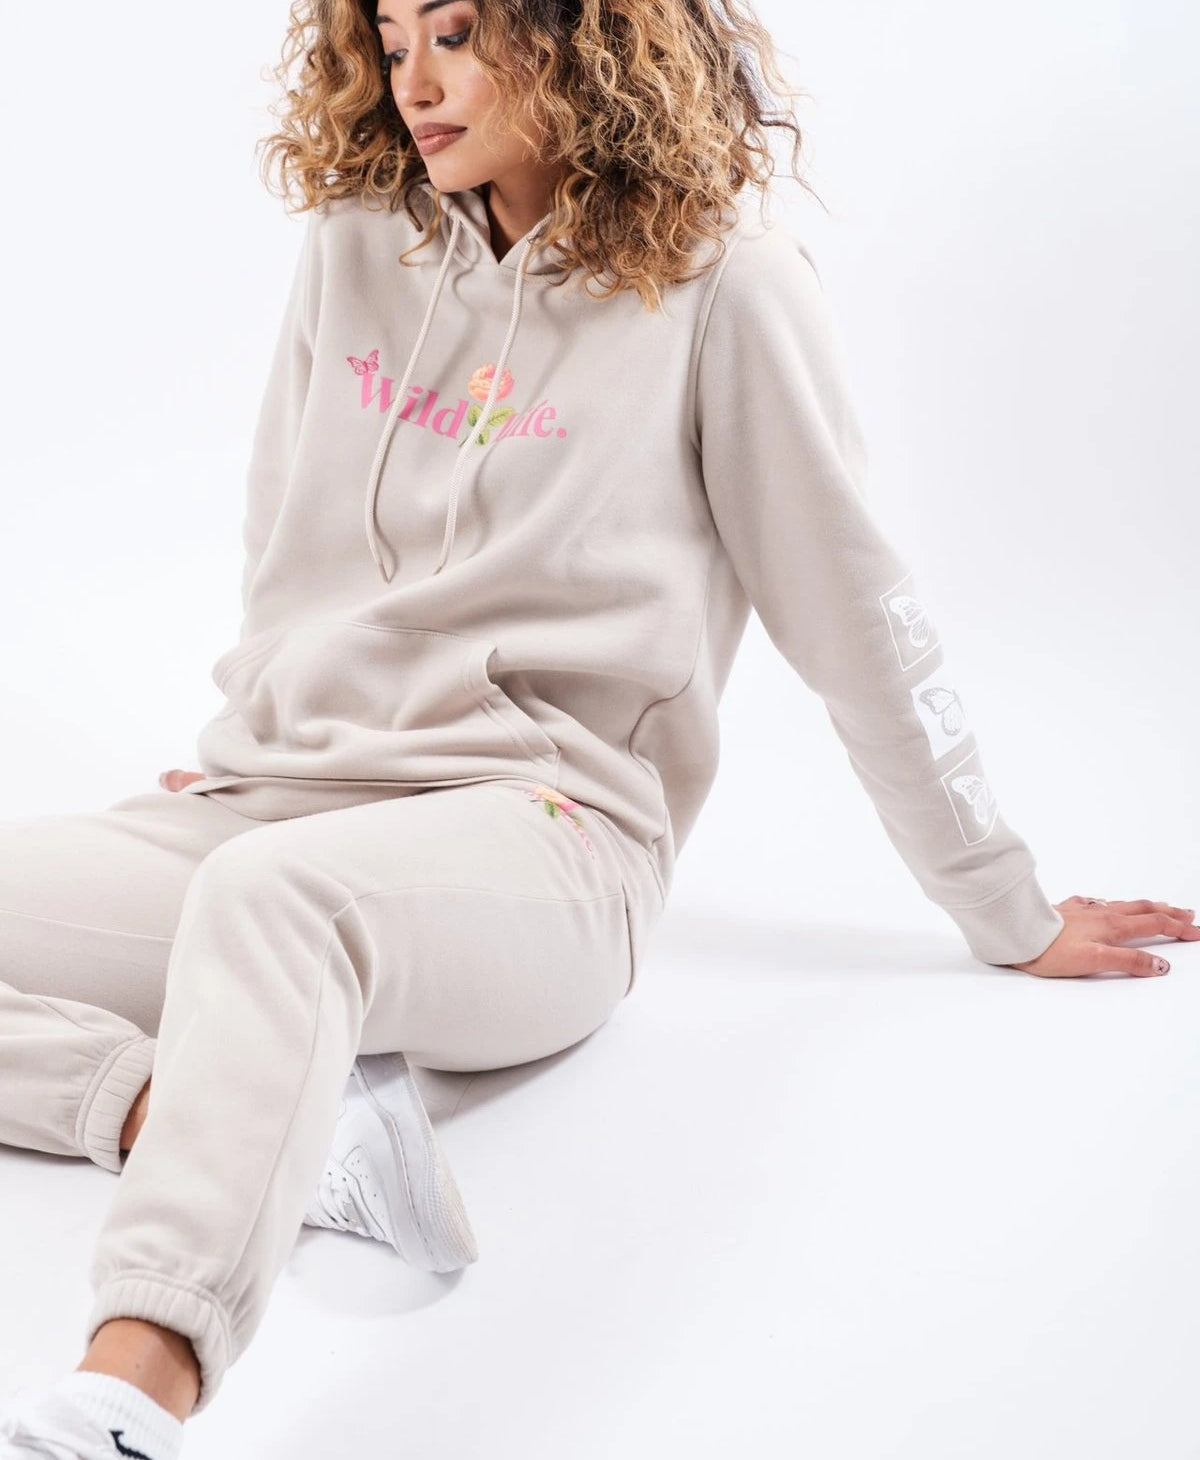 WOMEN'S SAND WILD LIFE FLEECE SWEATPANTS